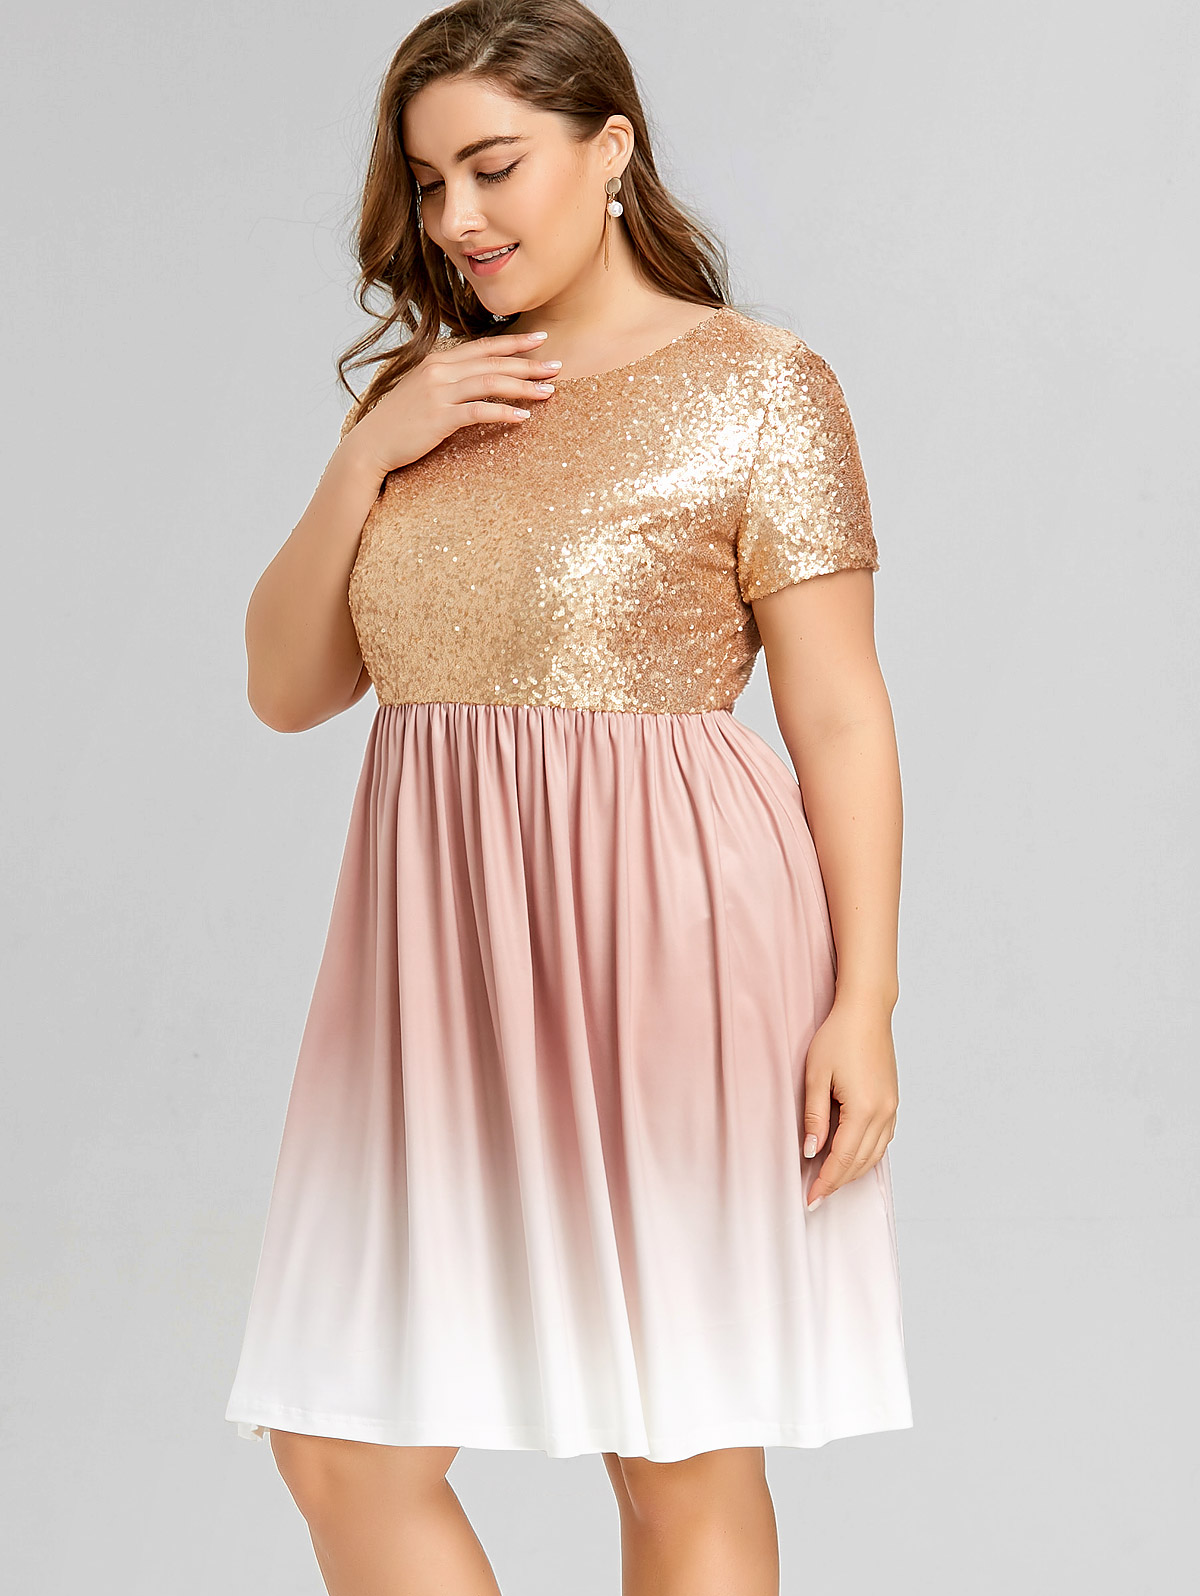 Gamiss Women Elegant Sparkly Party Dresses Plus Size 5xl Sequined